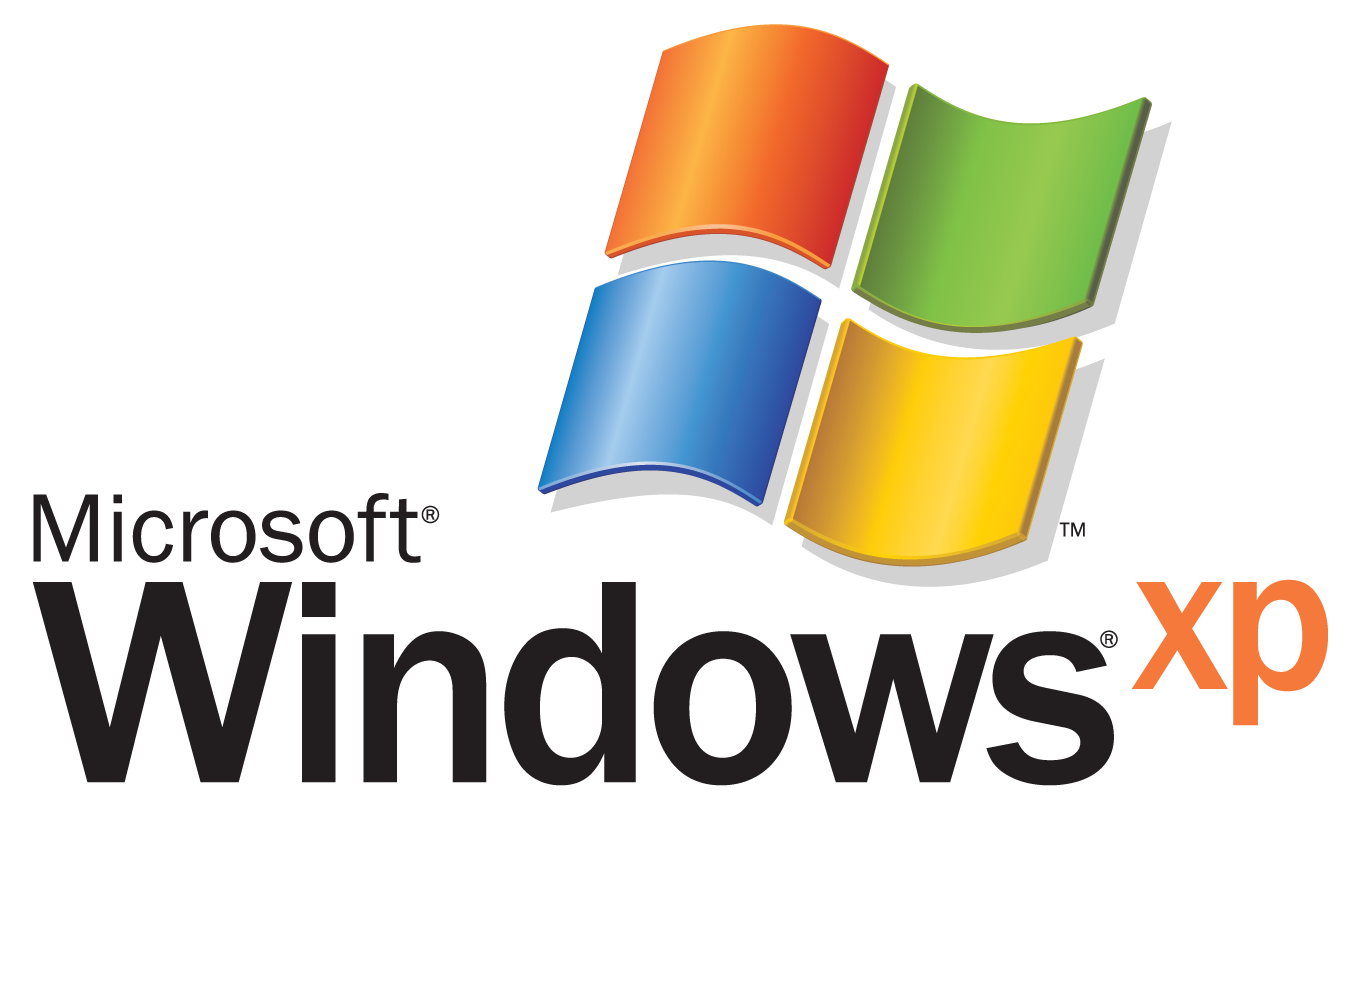 Oficialmente Windows XP llega a su fin